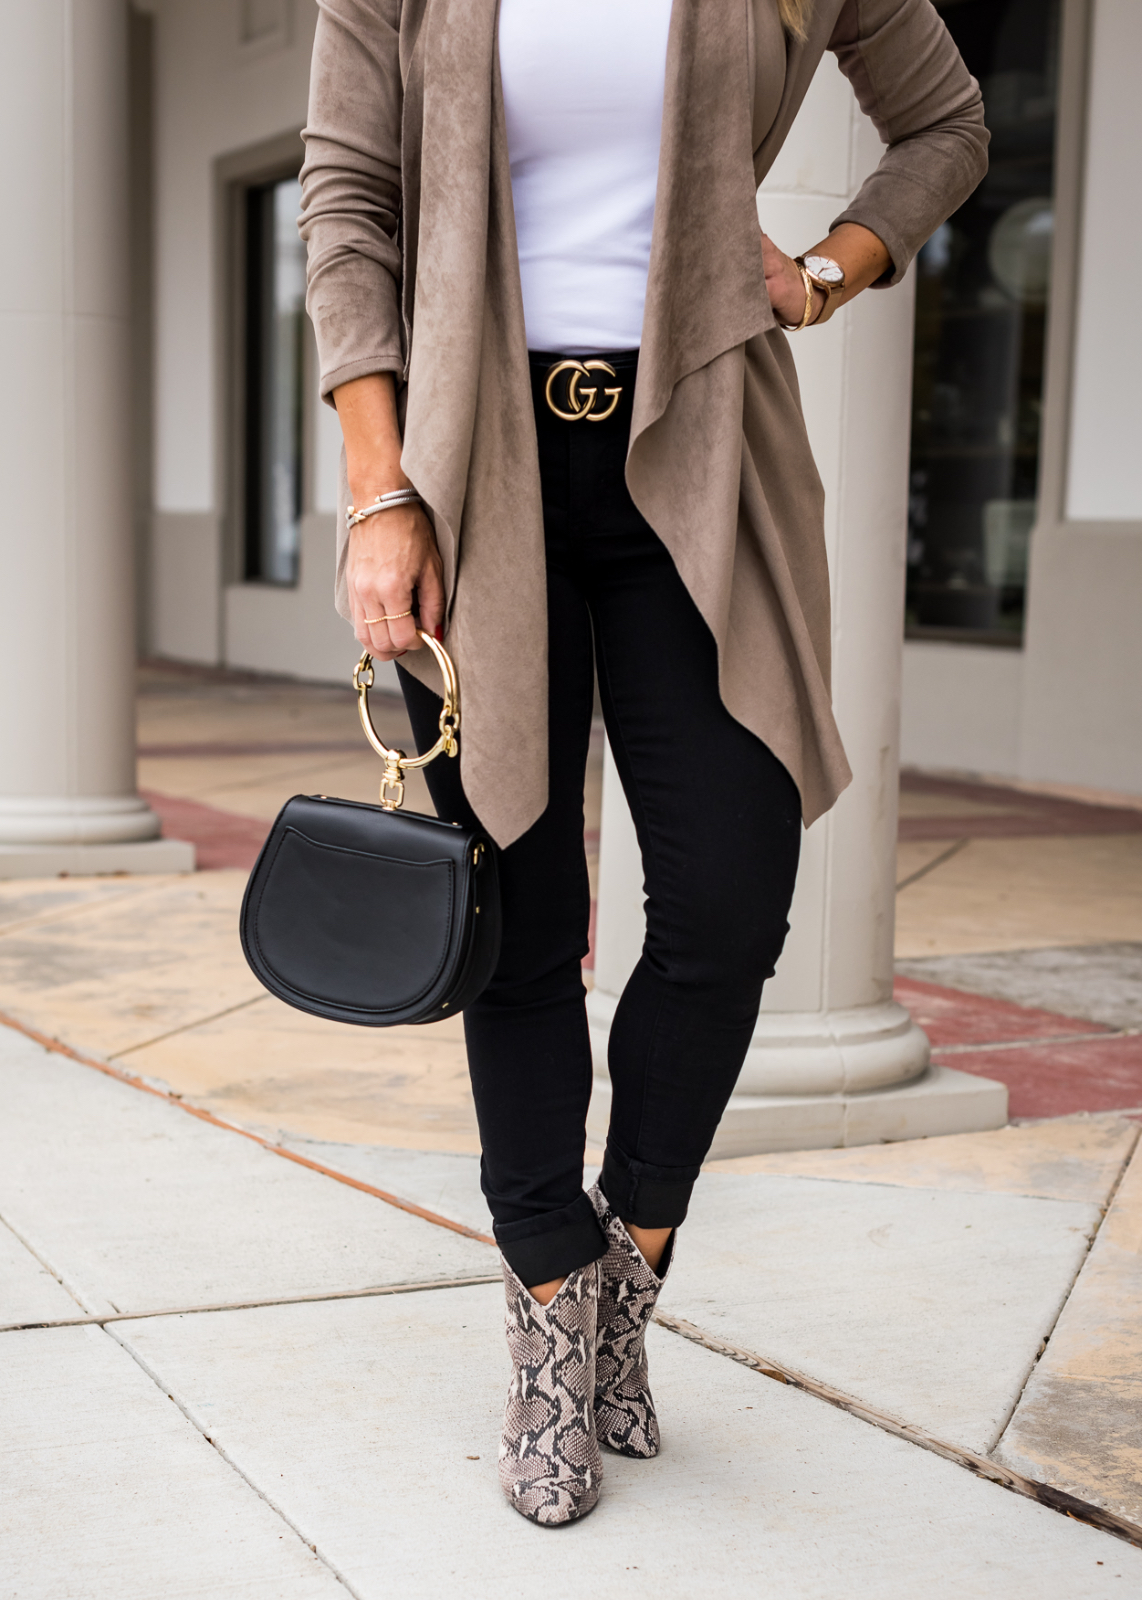 How to Style Ankle Booties - snakeskin boots and black jeans (3)